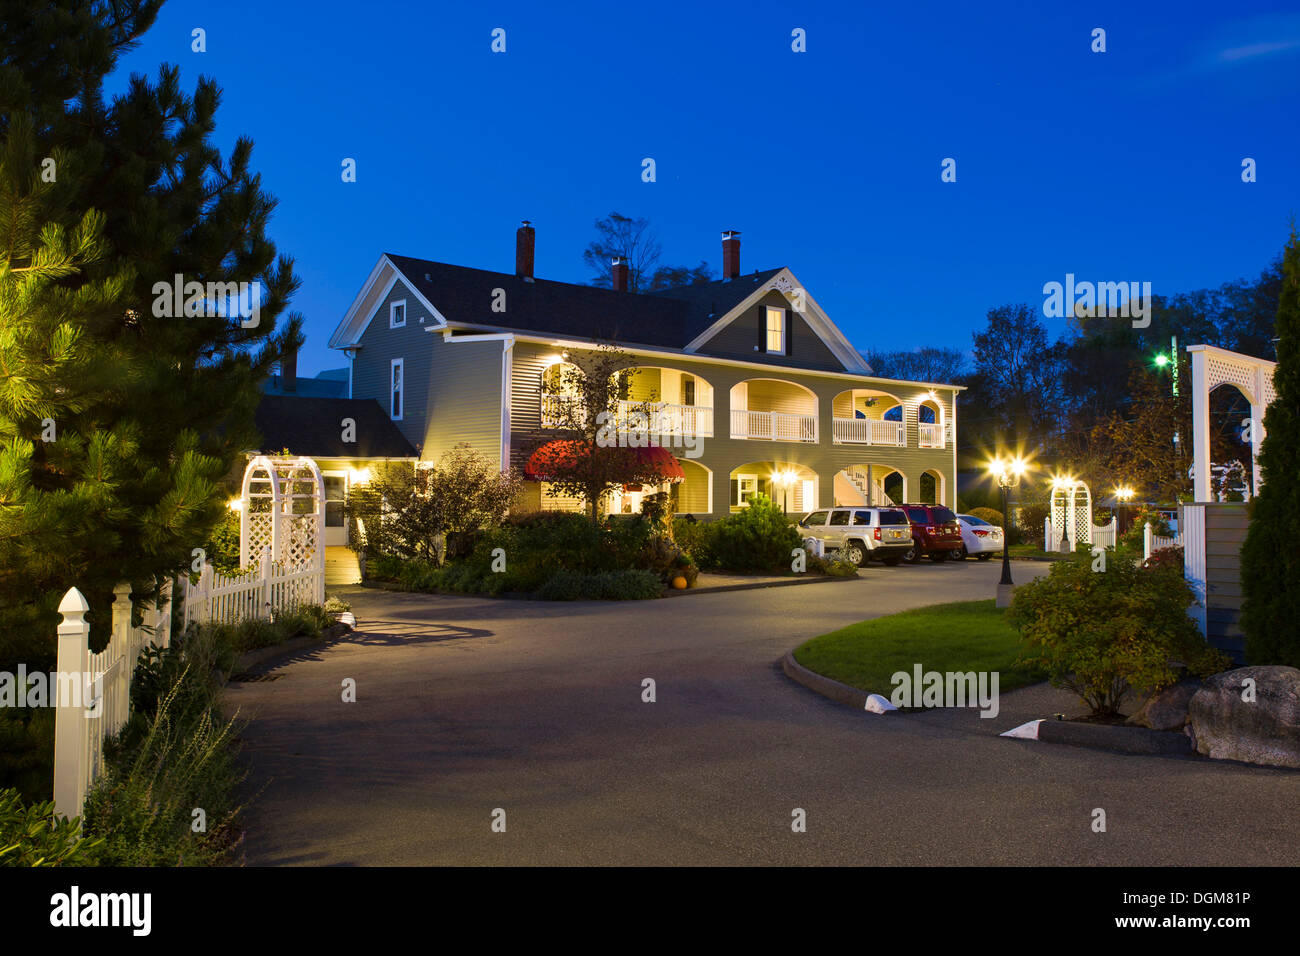 Bar harbor manor luxury hotel in bar harbor maine new for Modern luxury hotels uk